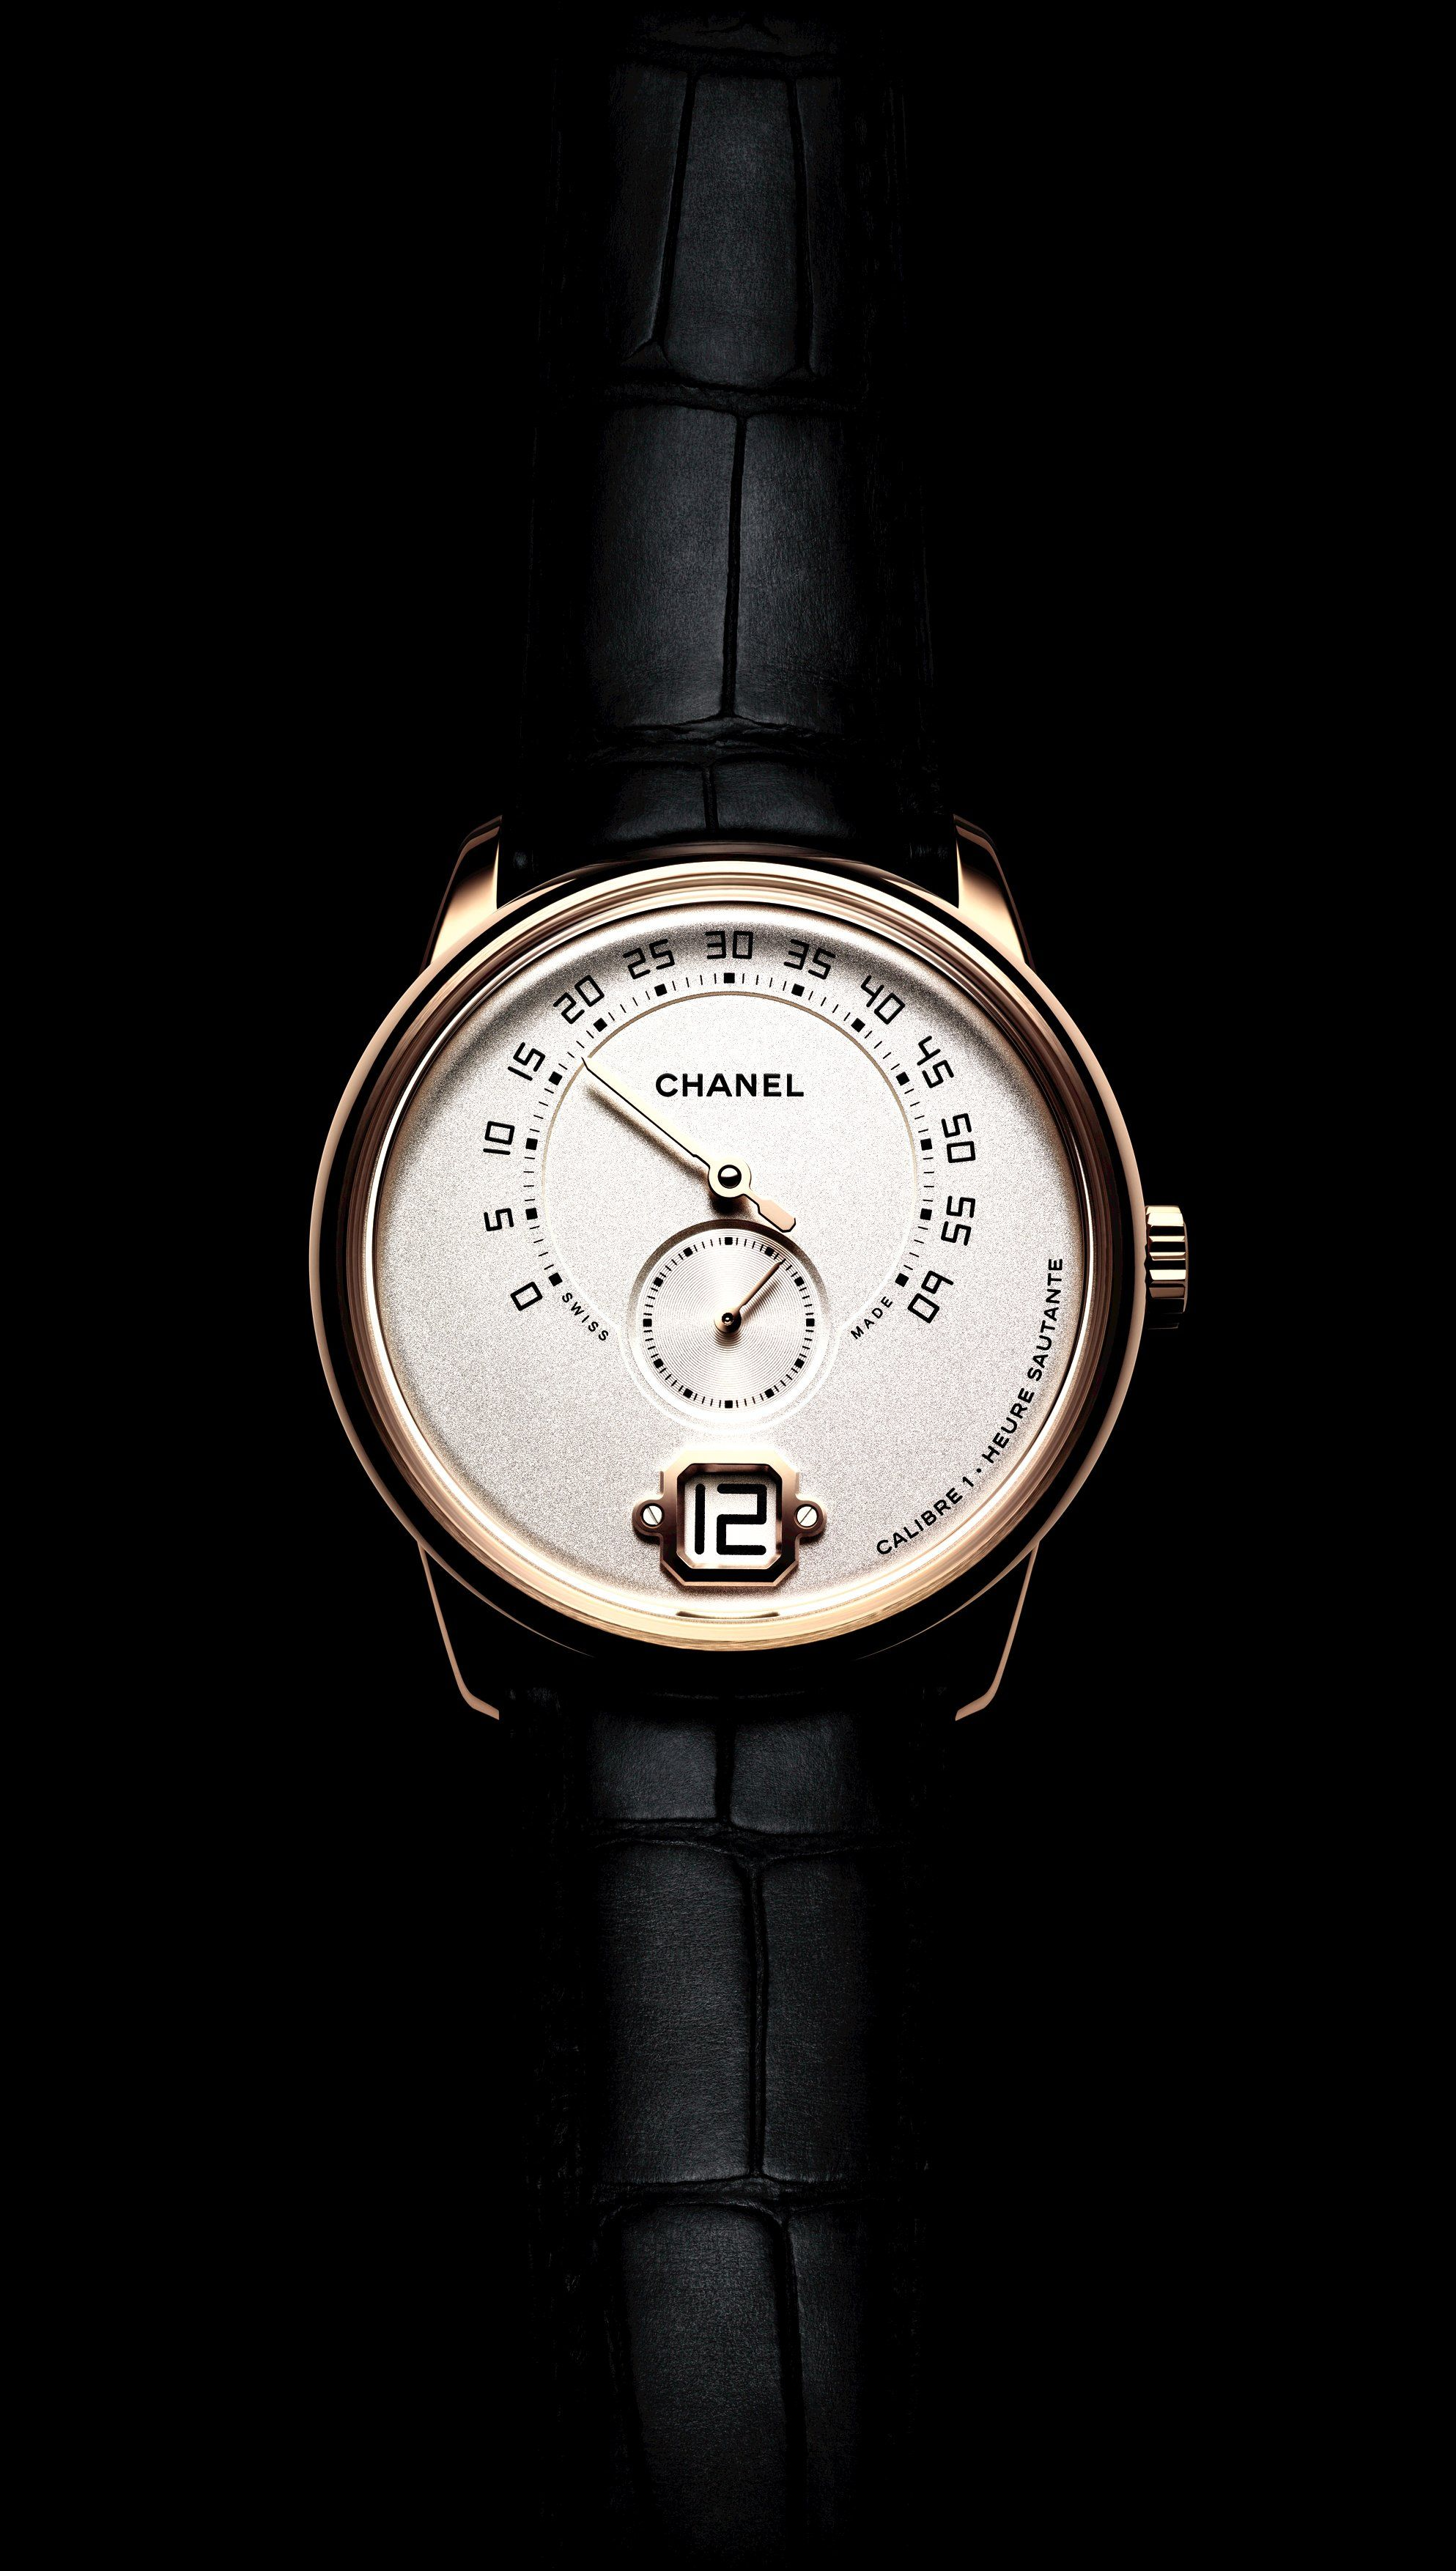 new moonphase content the watches at a sohne india best gq gift sihh curiously lange